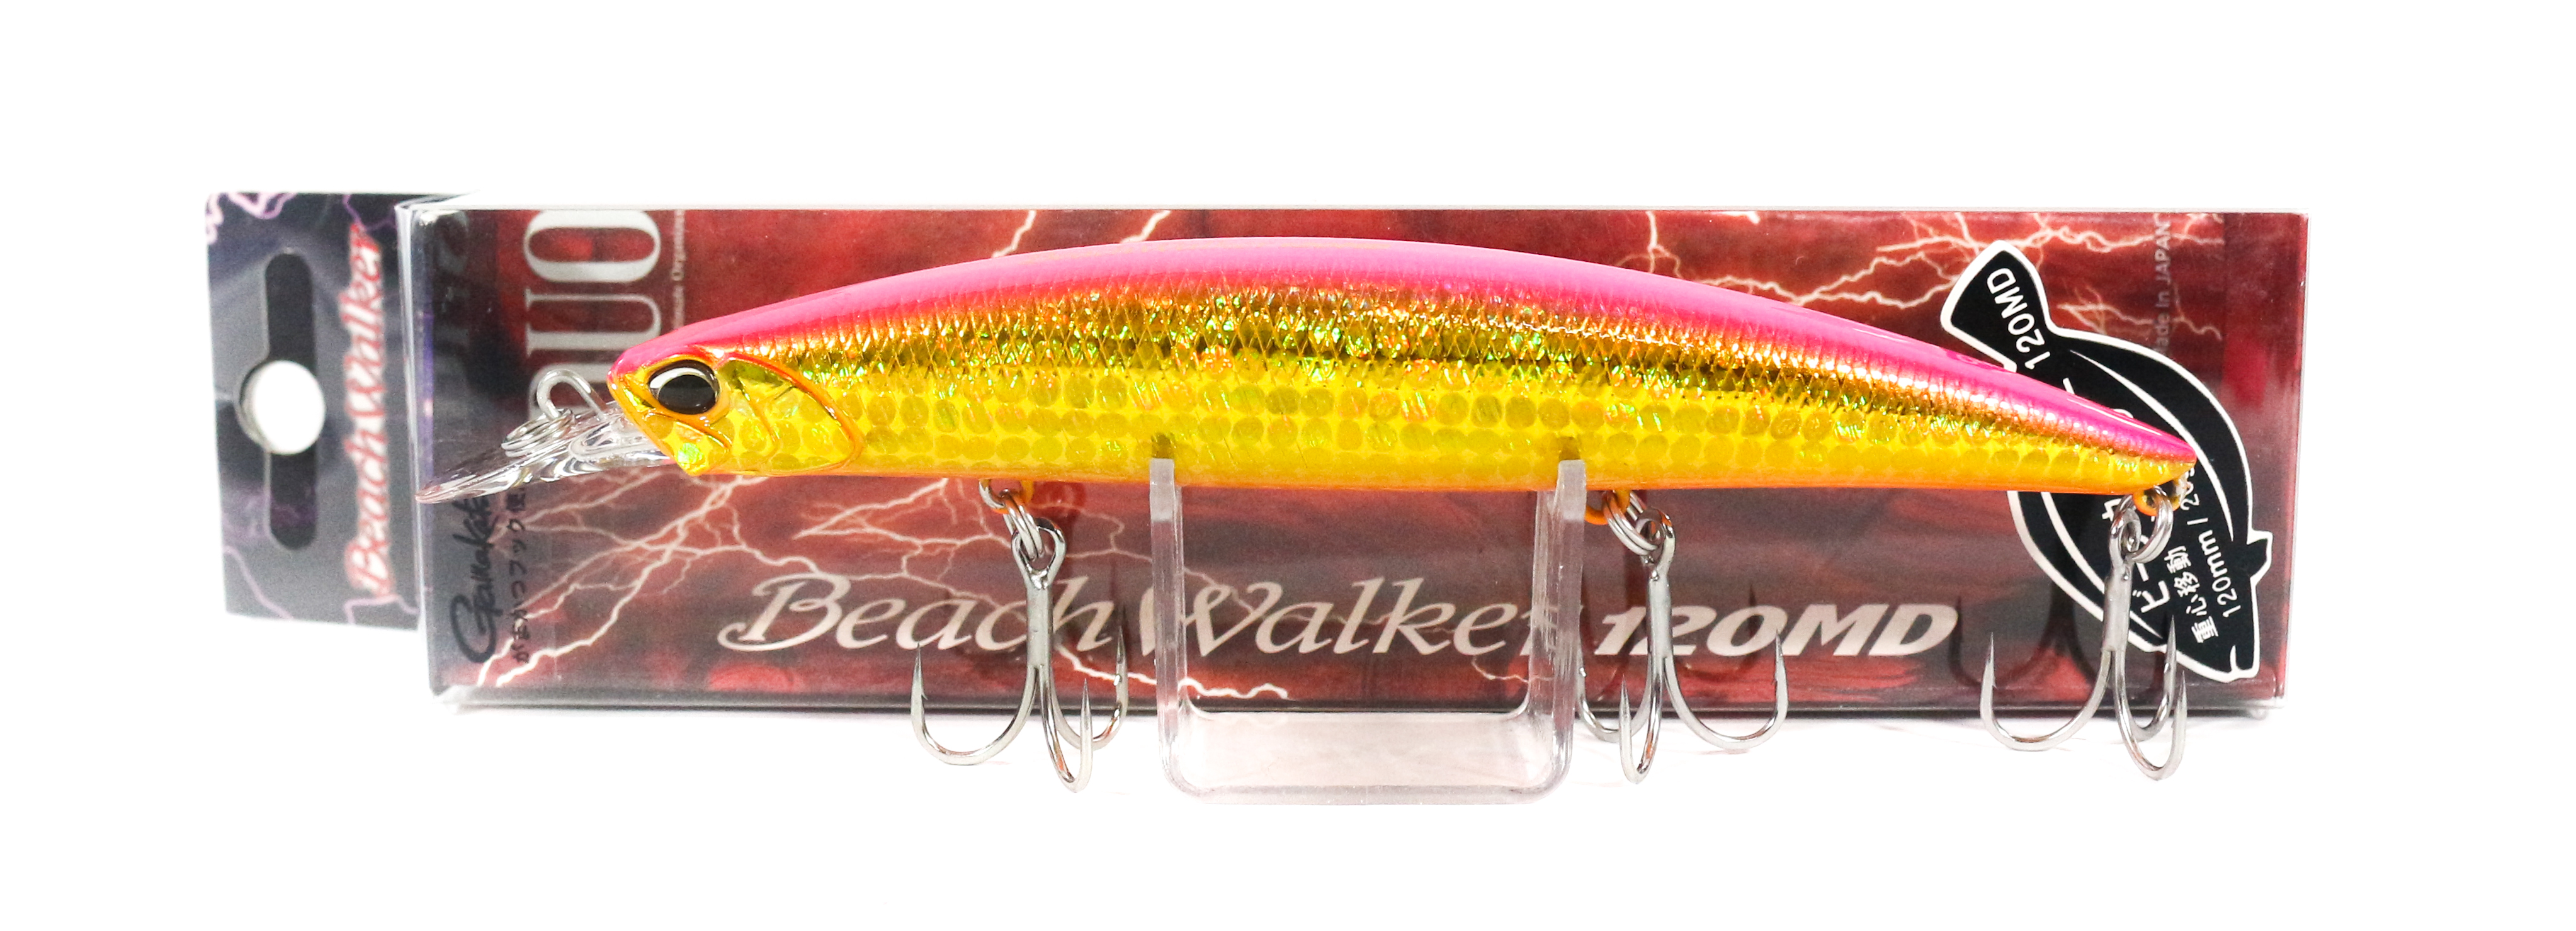 Duo Beach Walker 120 MD Sinking Lure AQA0242 (2100)